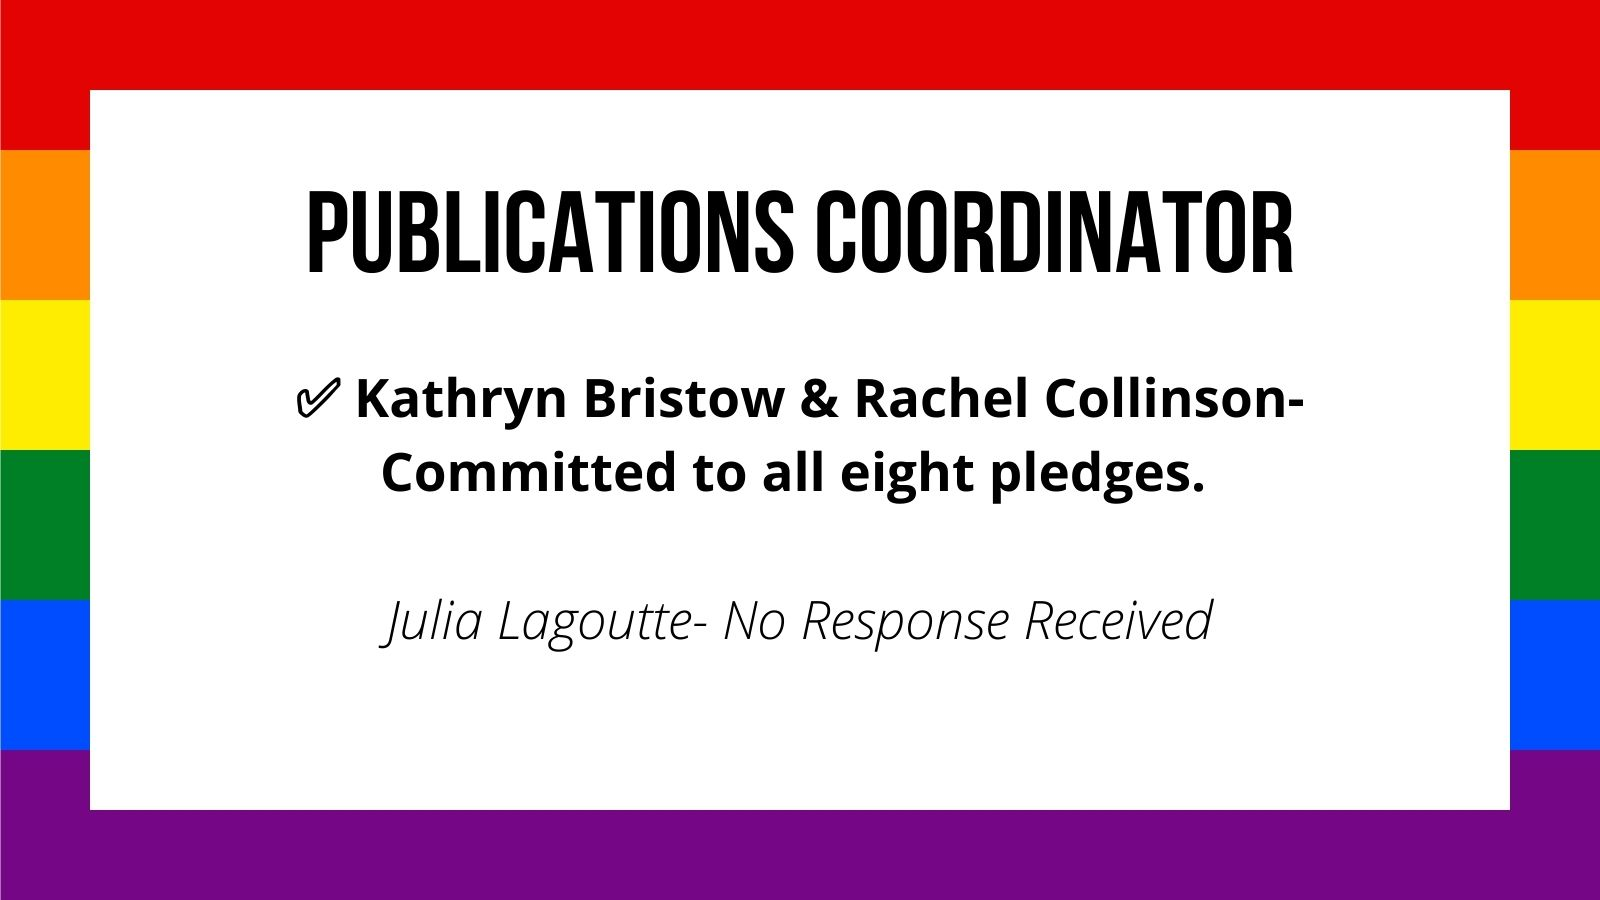 Publications Coordinator Kathryn Bristow & Rachel Collinson- Committed to all eight pledges. ✅ Julia Lagoutte- No Response Received